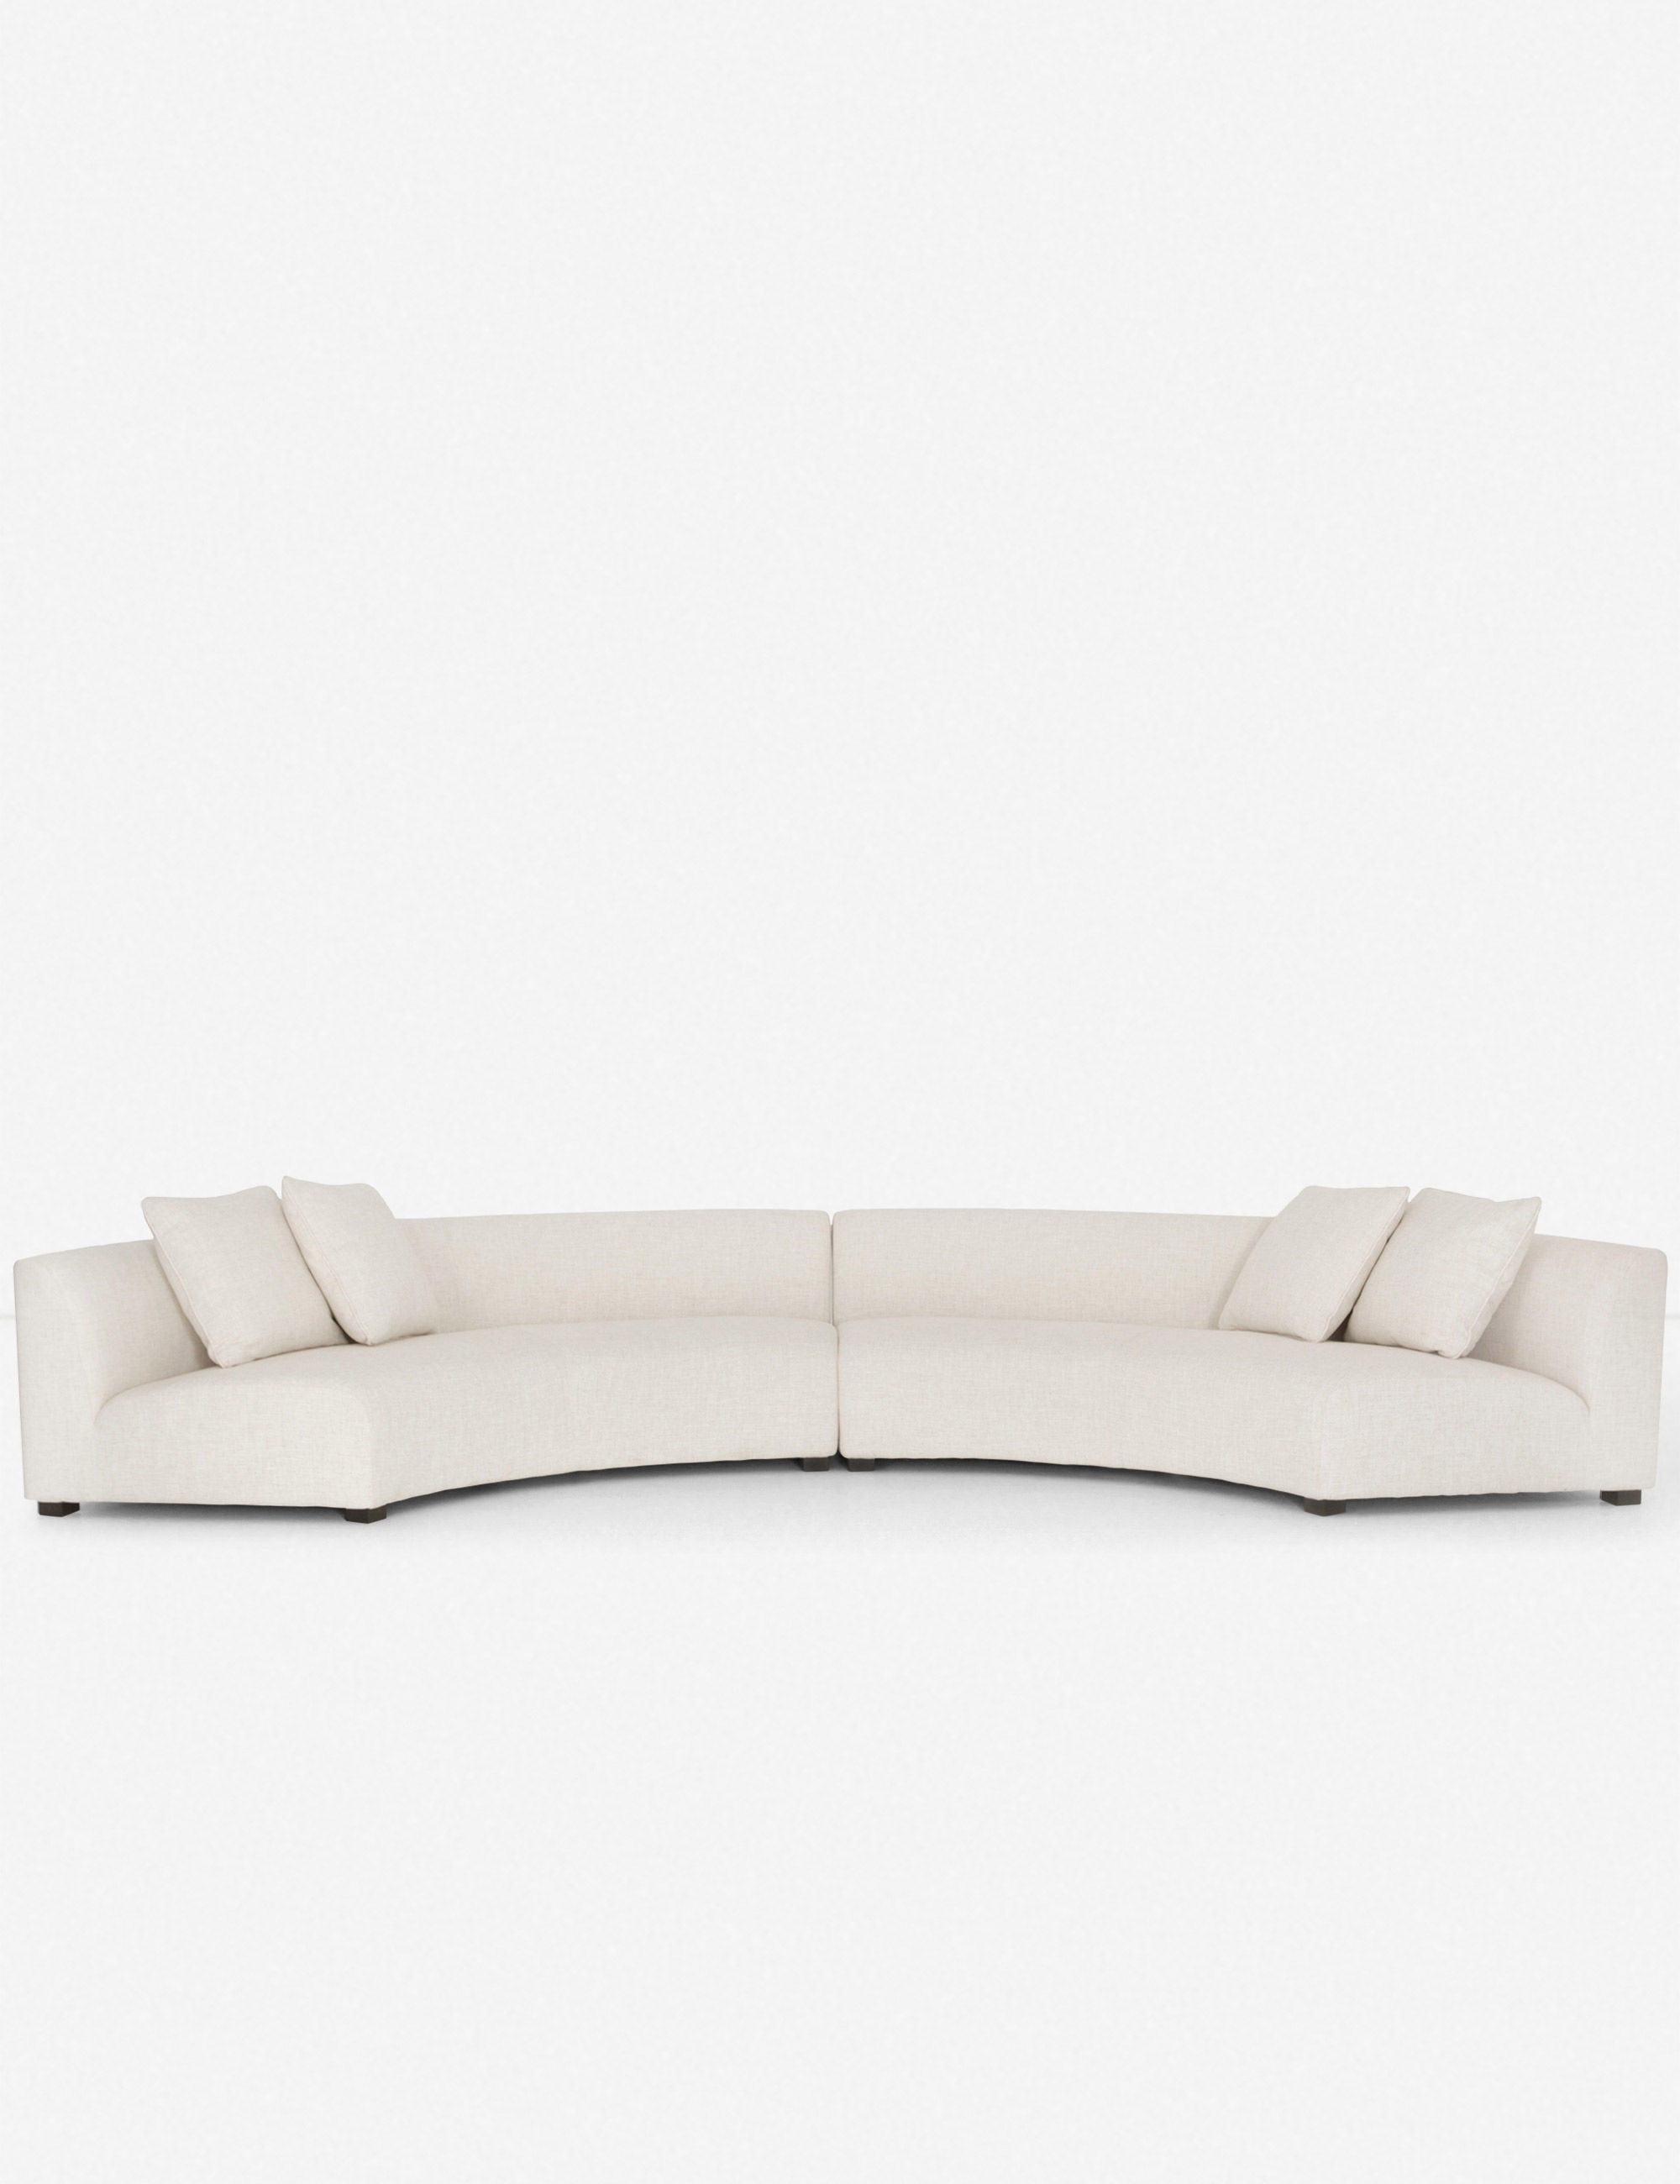 Super Saban 2 Piece Crescent Sectional Sofa Ivory Evergreenethics Interior Chair Design Evergreenethicsorg